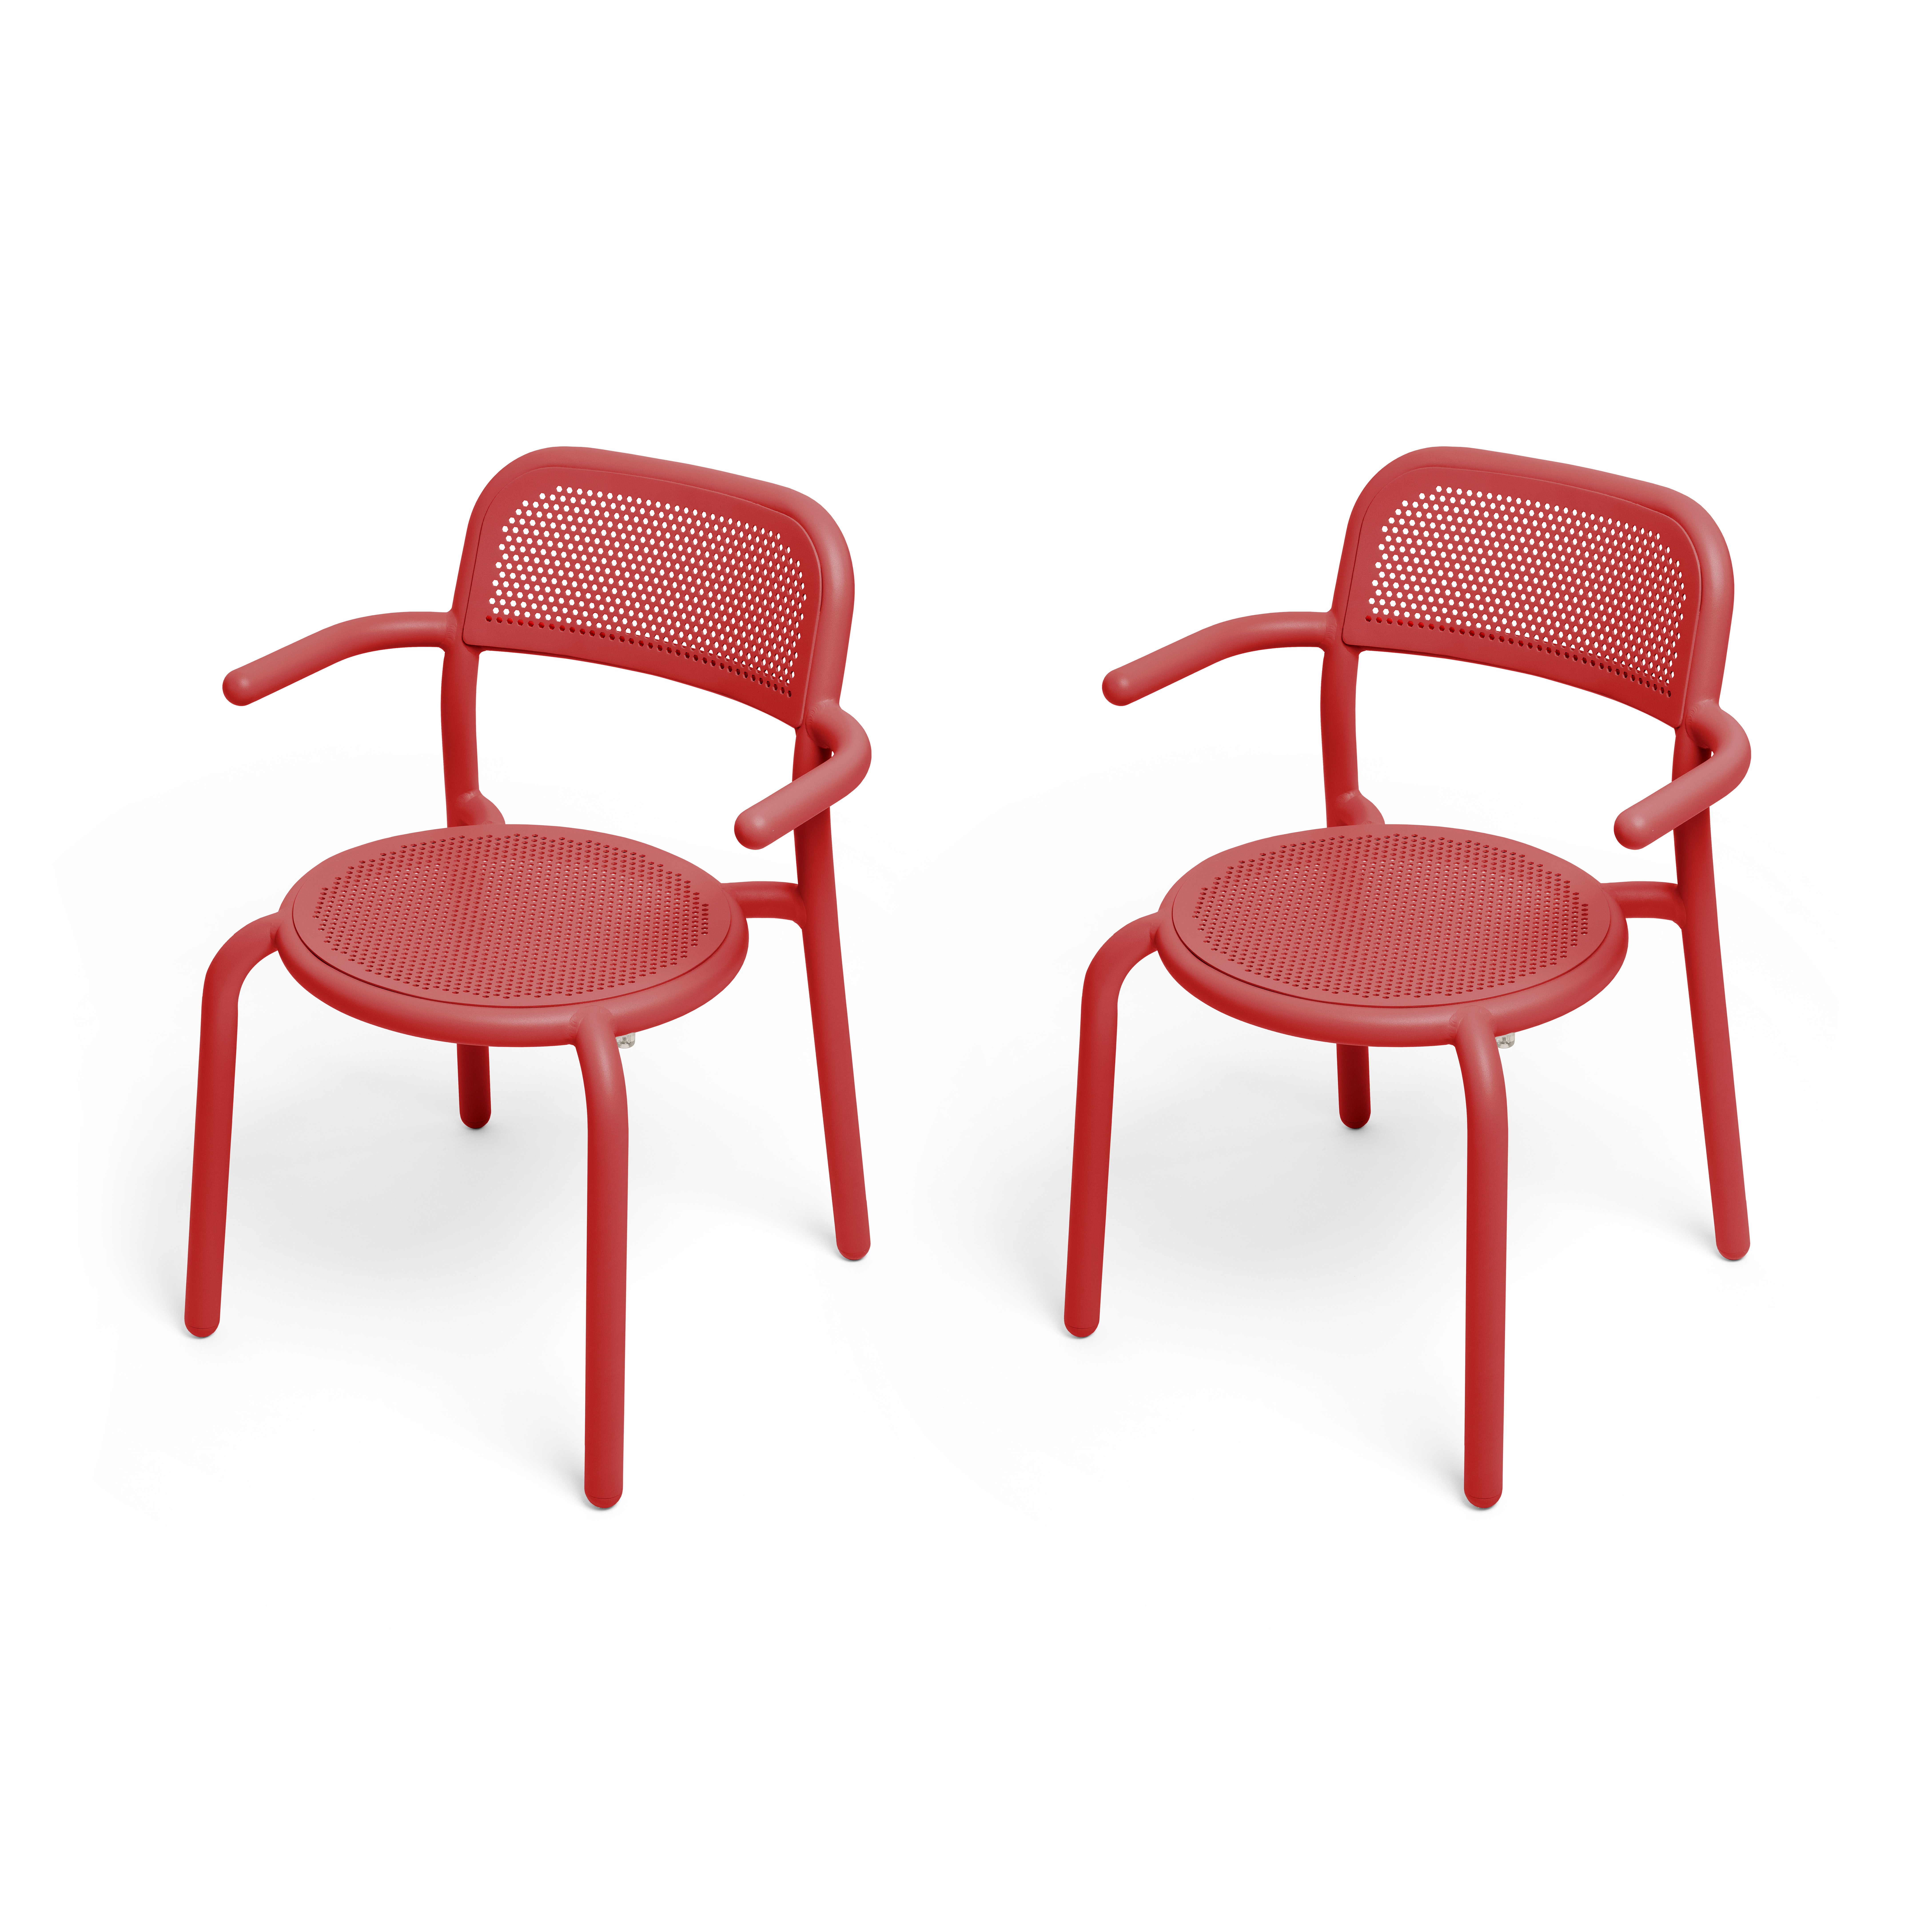 Furniture - Chairs - Toní Stackable armchair - / Set of 2 - Perforated aluminium by Fatboy - Industrial red - Aluminium